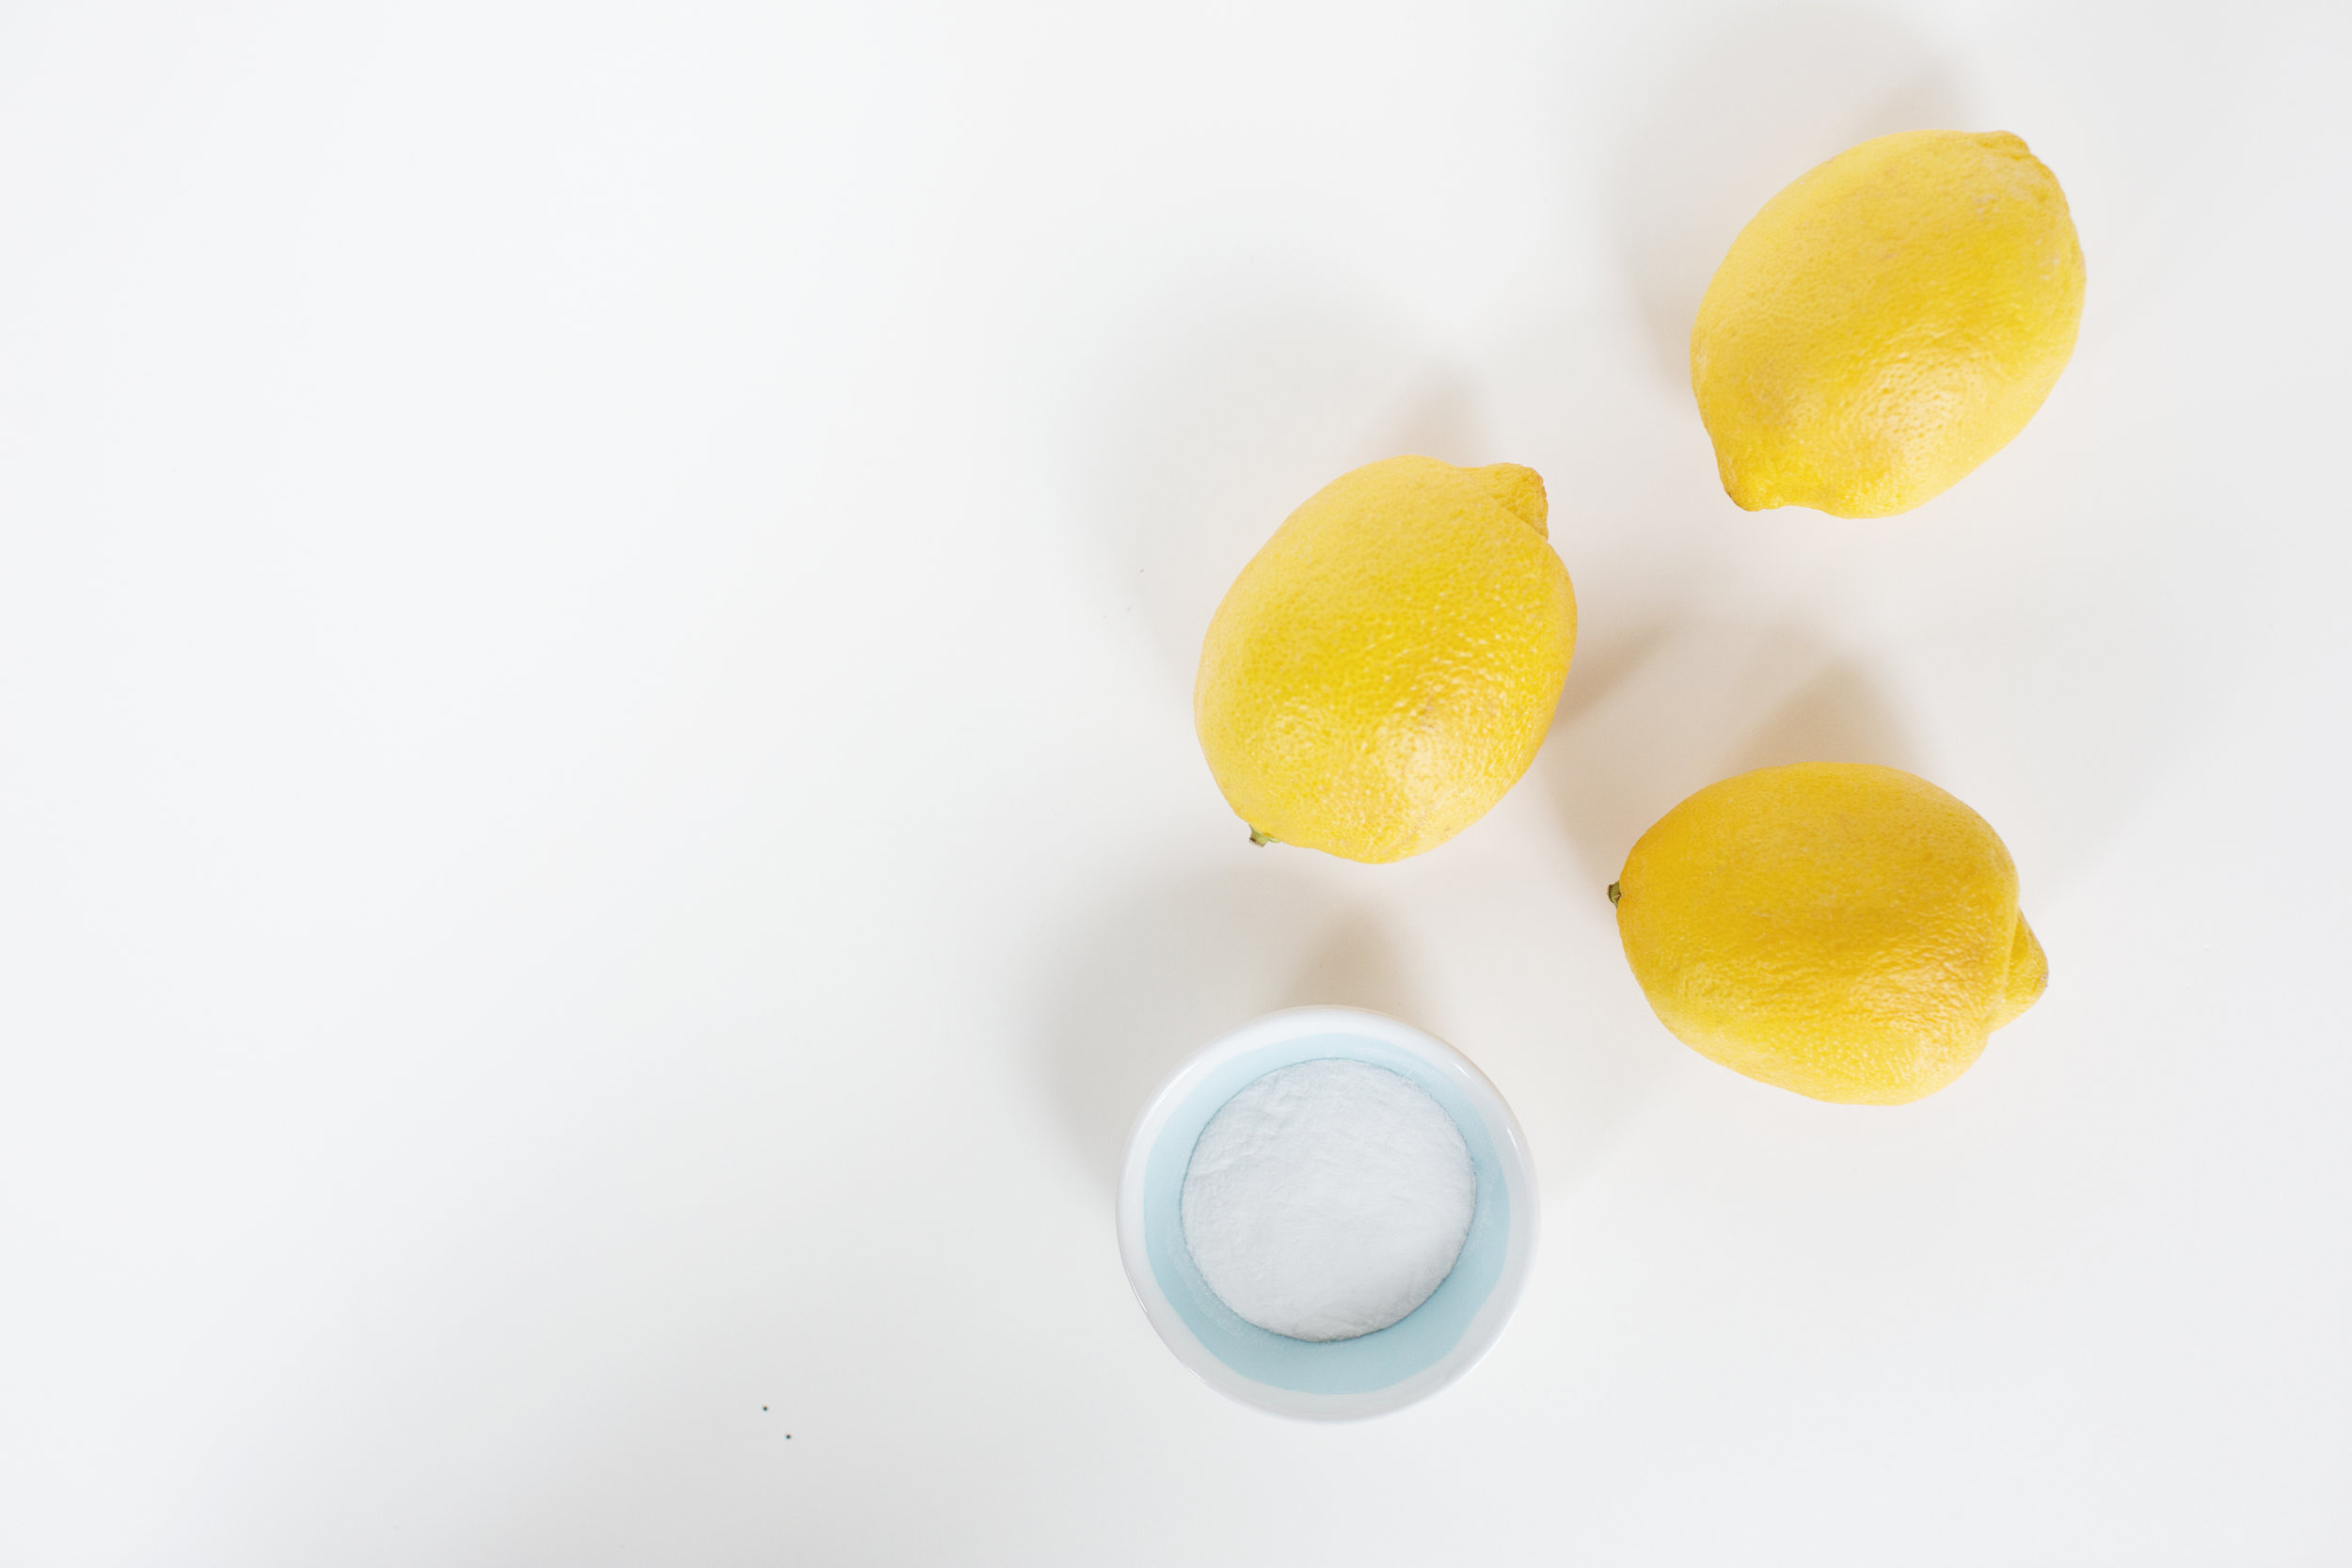 how to clean your jewelry at home. lemons + baking soda.jpg